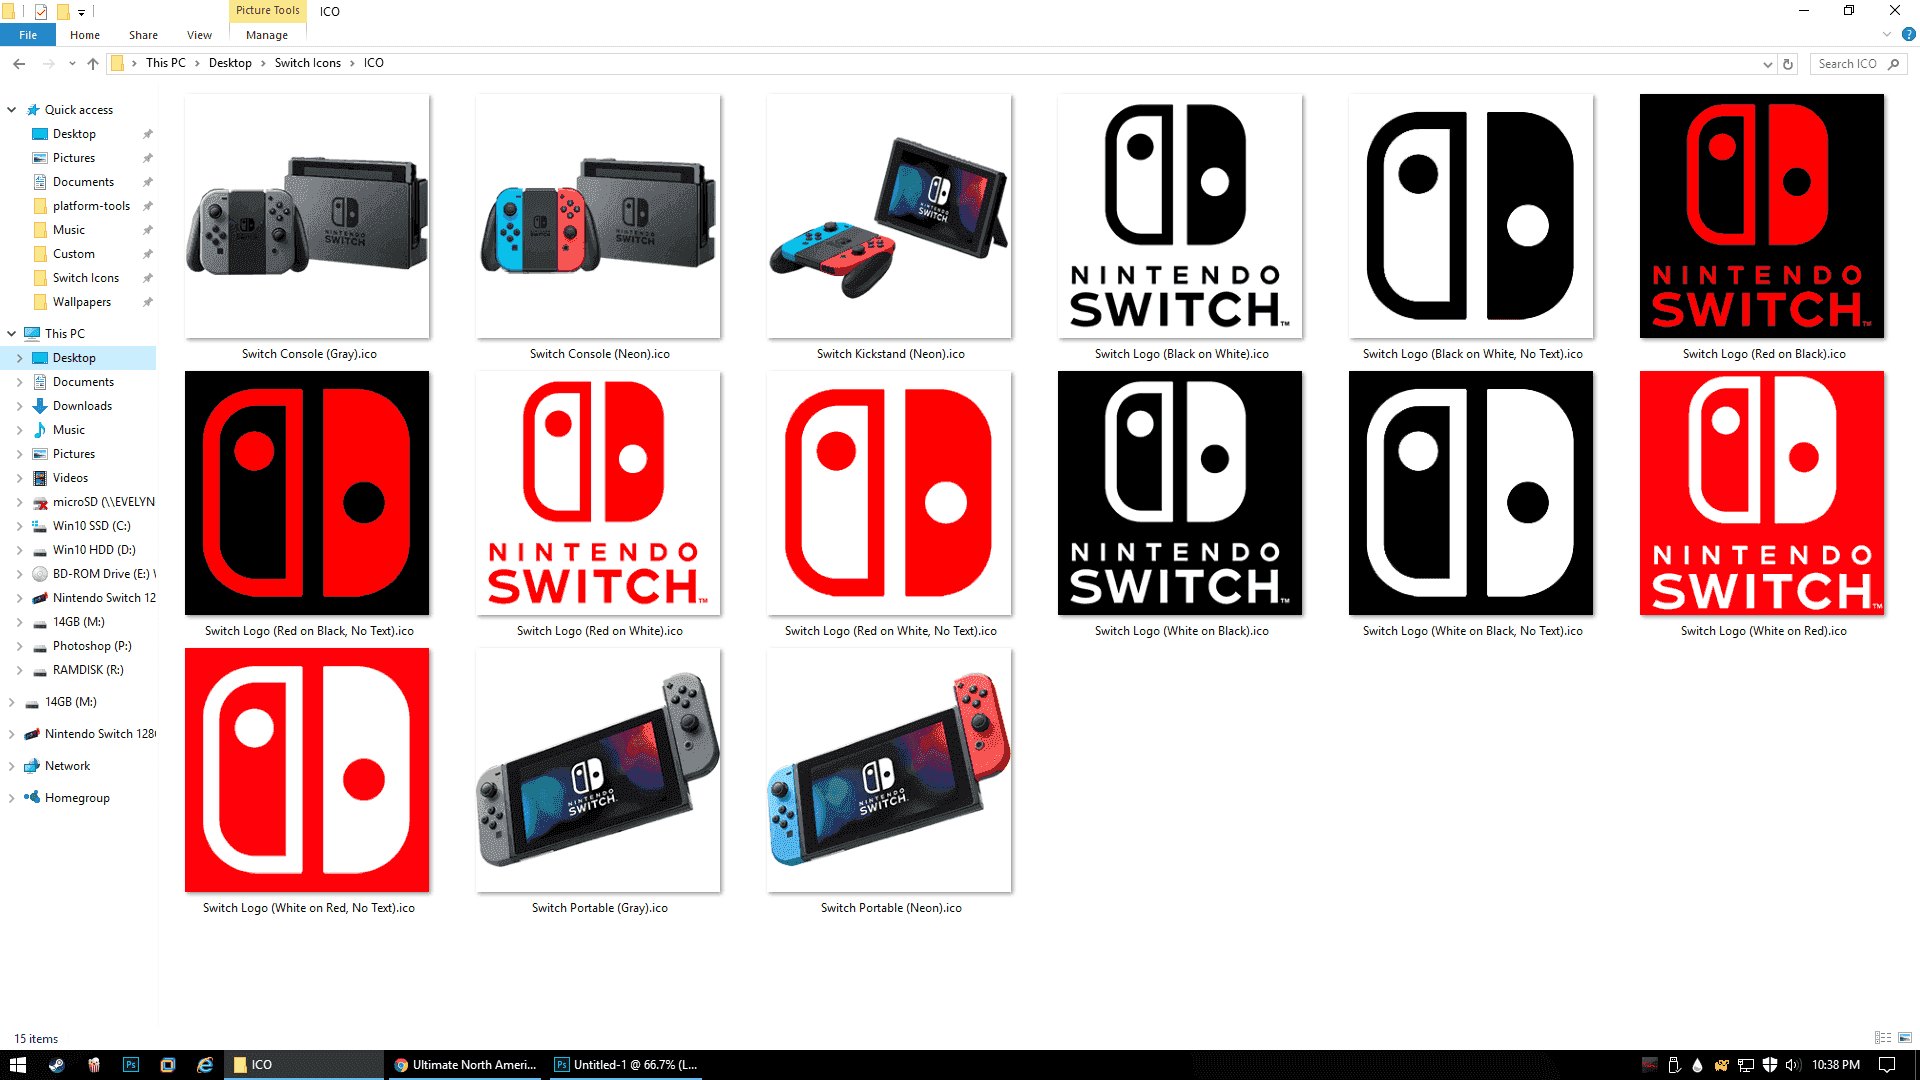 Release 256x256 Nintendo Switch Microsd Drive Icons Both Ico And Png Gbatemp Net The Independent Video Game Community Wiring diagram nintendo switch electrical switches, nintendo, text, rectangle png. 256x256 nintendo switch microsd drive